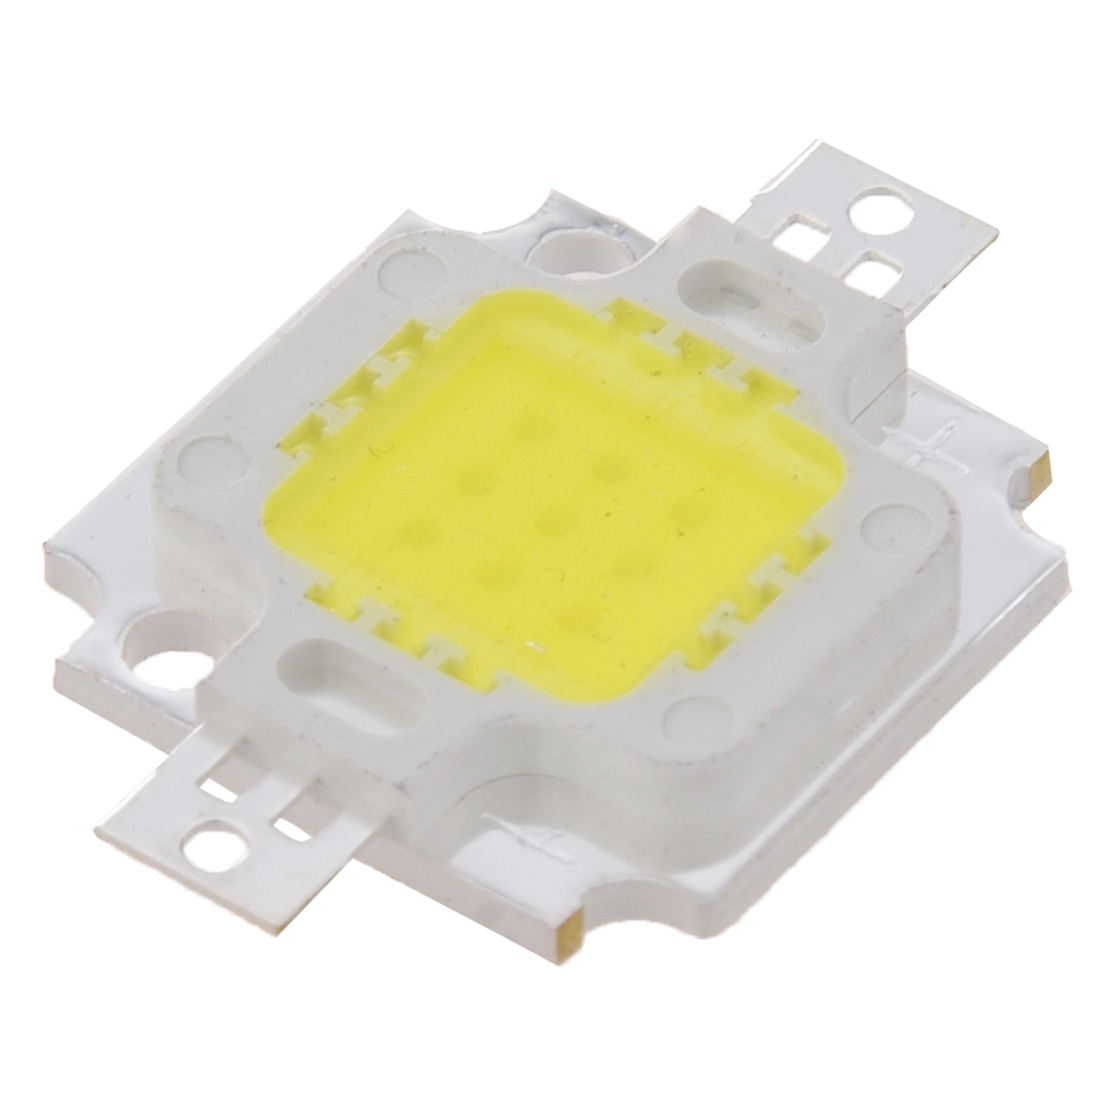 Pcs w led pure white high power lm lamp smd